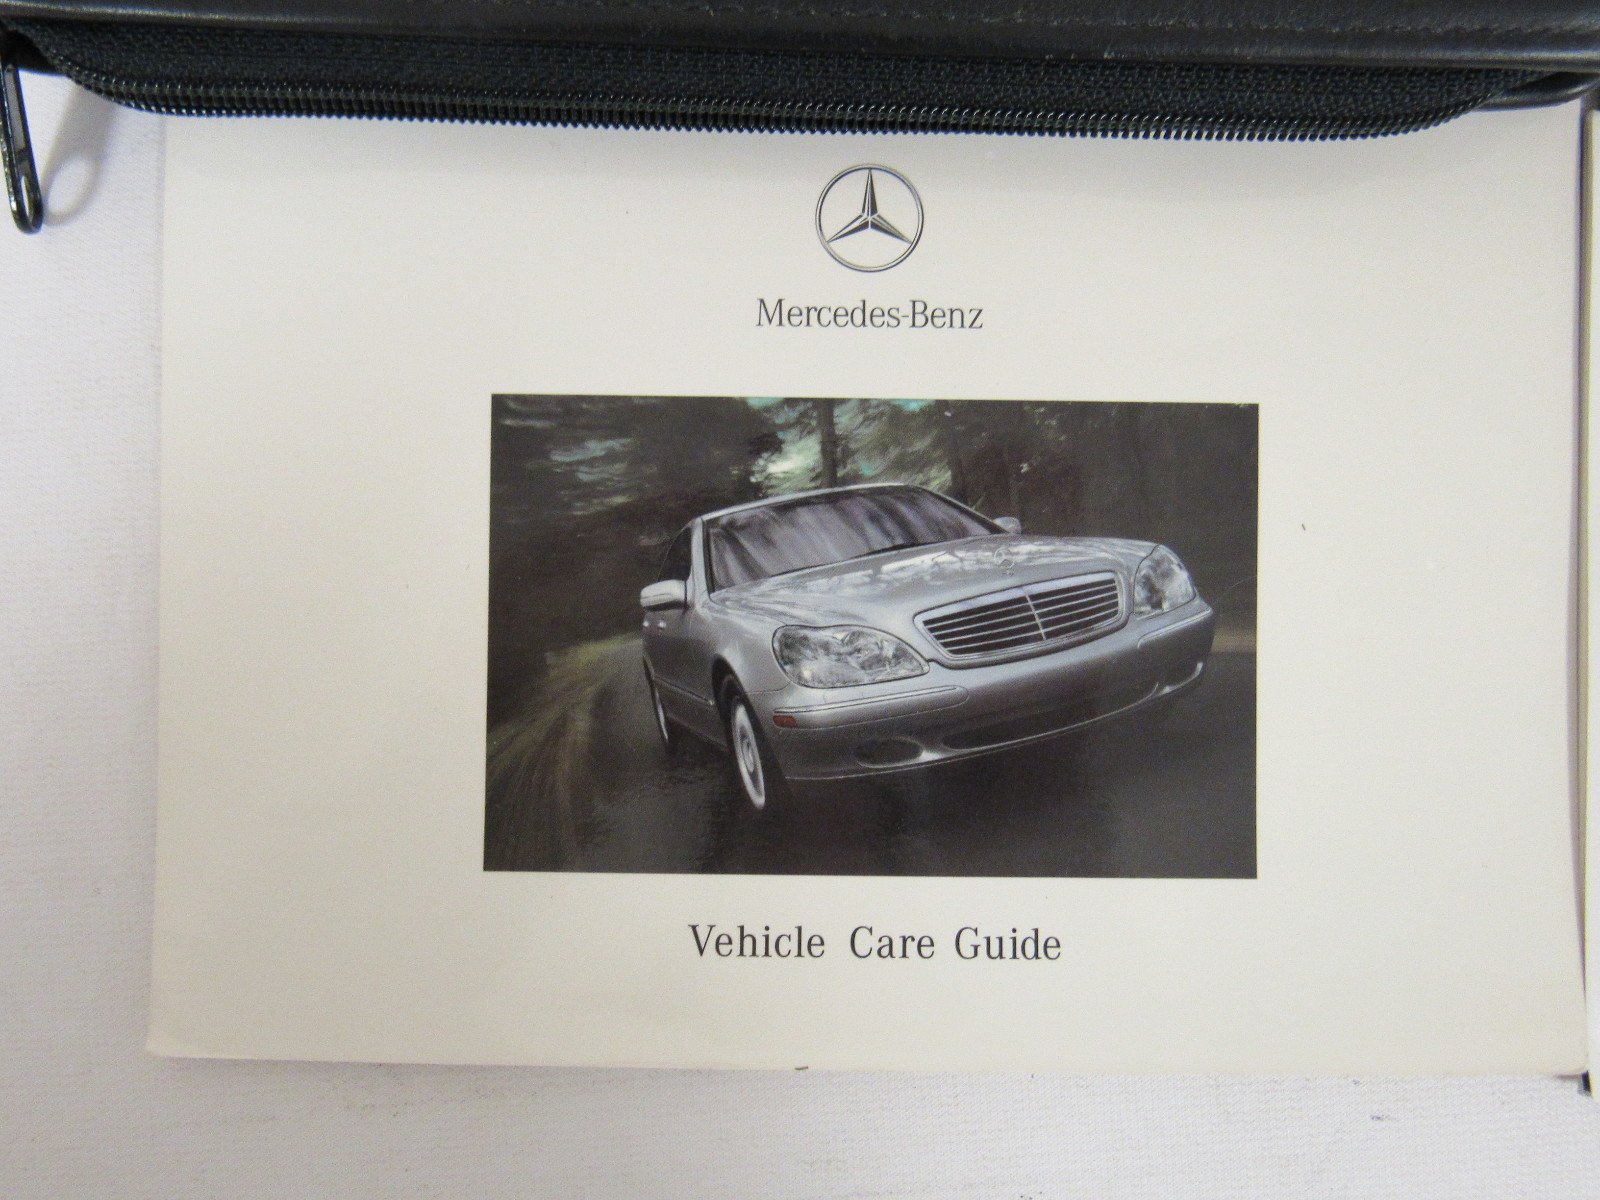 1999 Mercedes-Benz CLK 430 Owners Manual book: Mercedes-Benz: Amazon.com:  Books